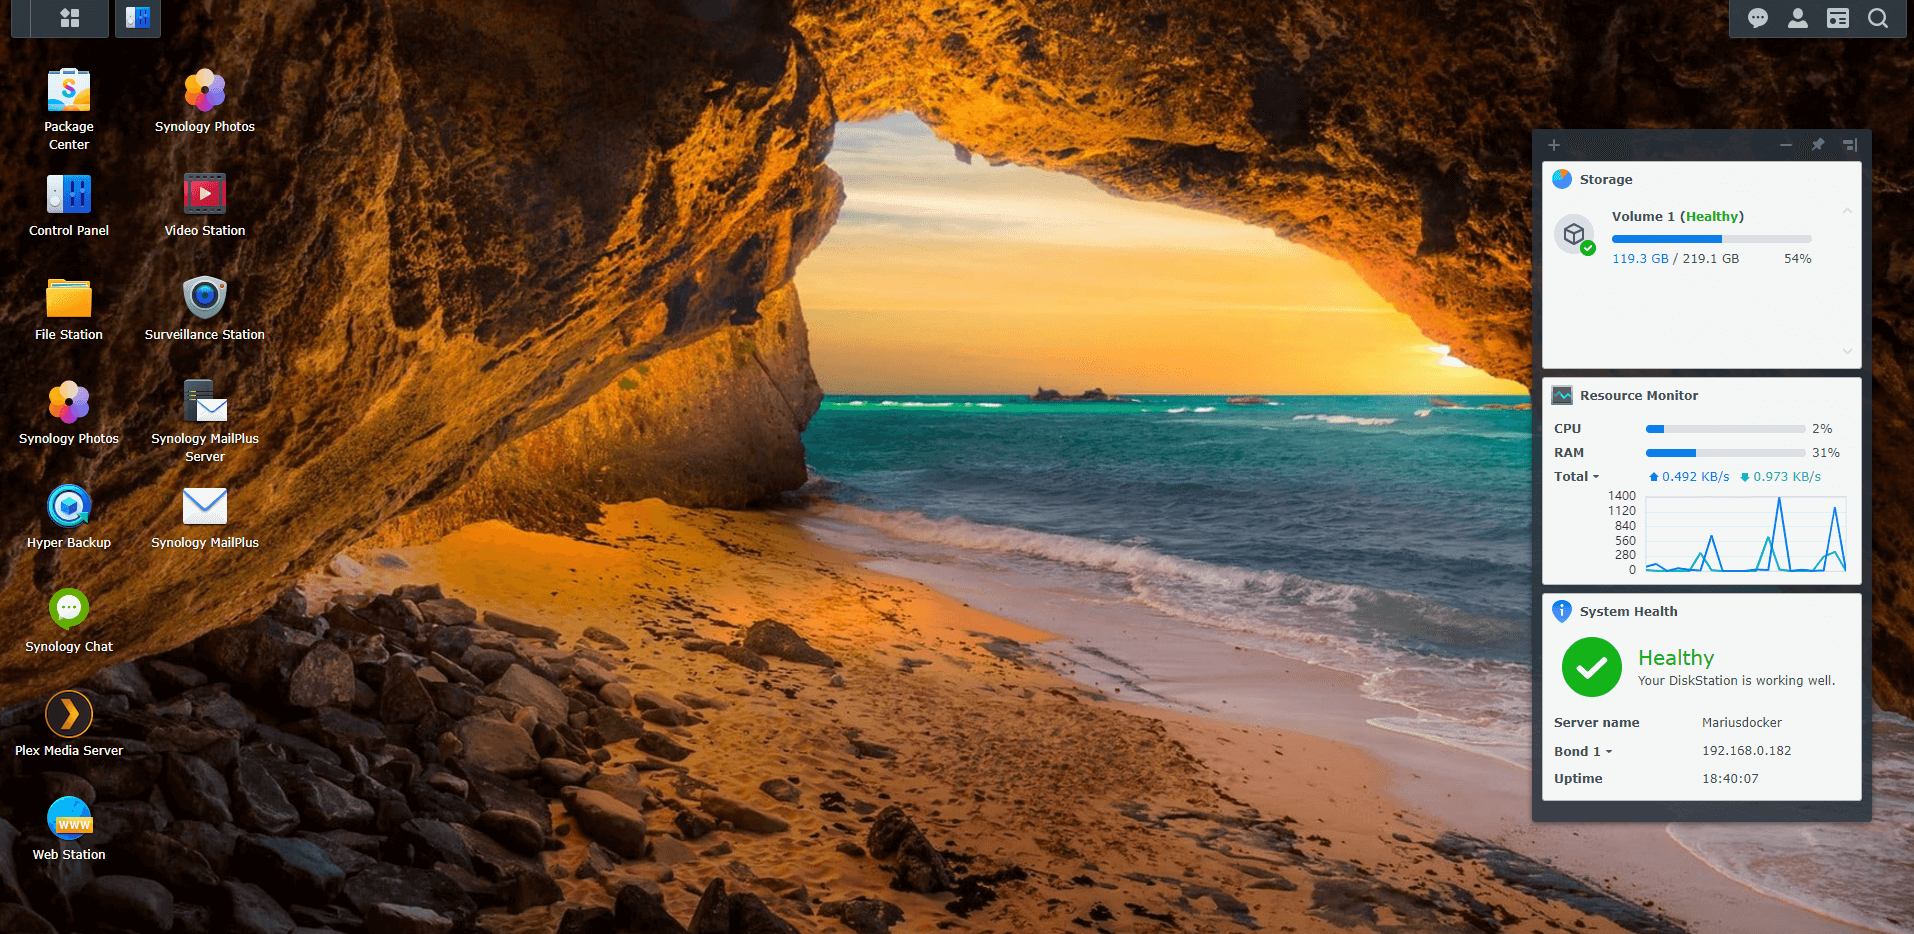 Synology Cave Wallpapers For DSM 7 2